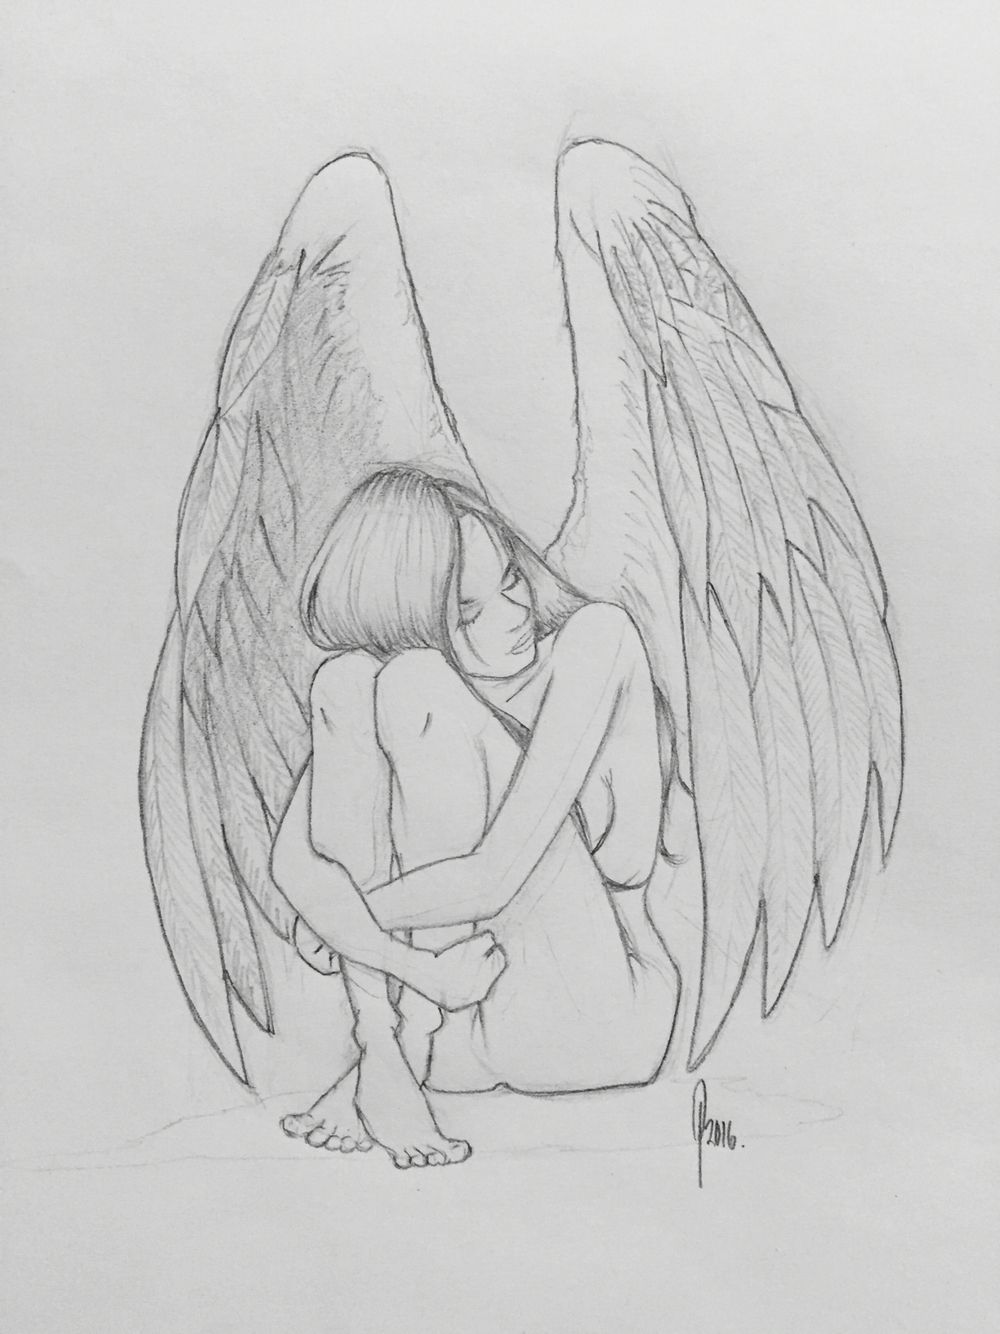 clip freeuse stock Image result for in. Drawing s angel